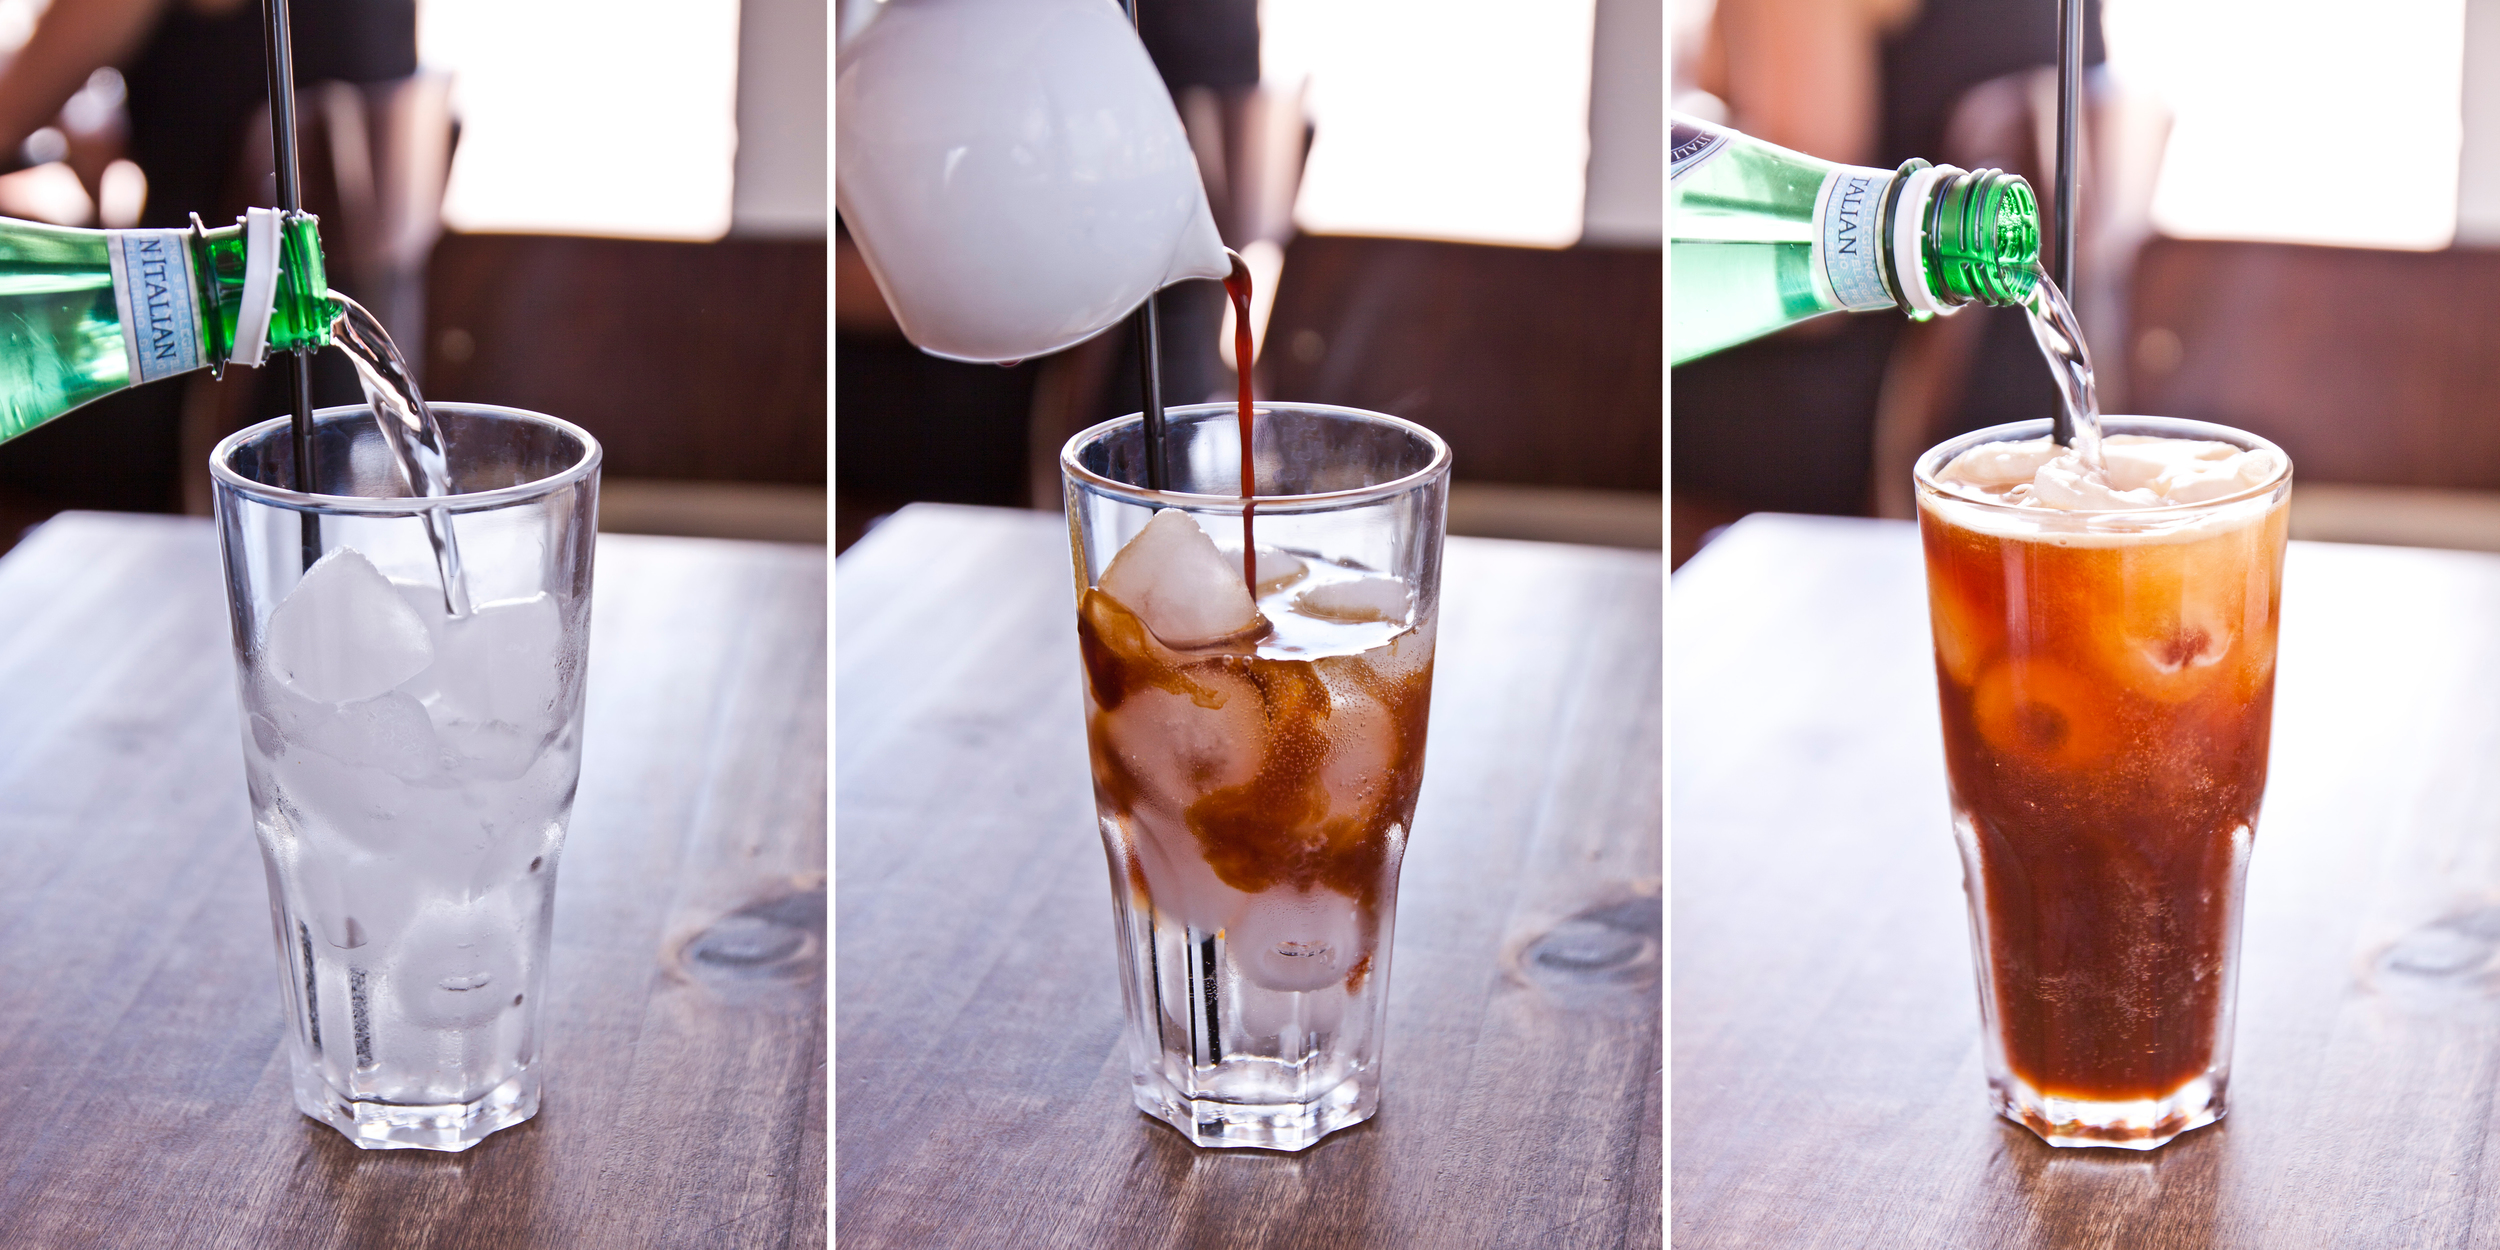 Try our Coffee Spritzer withSparkling Water & fresh espresso -$5.00